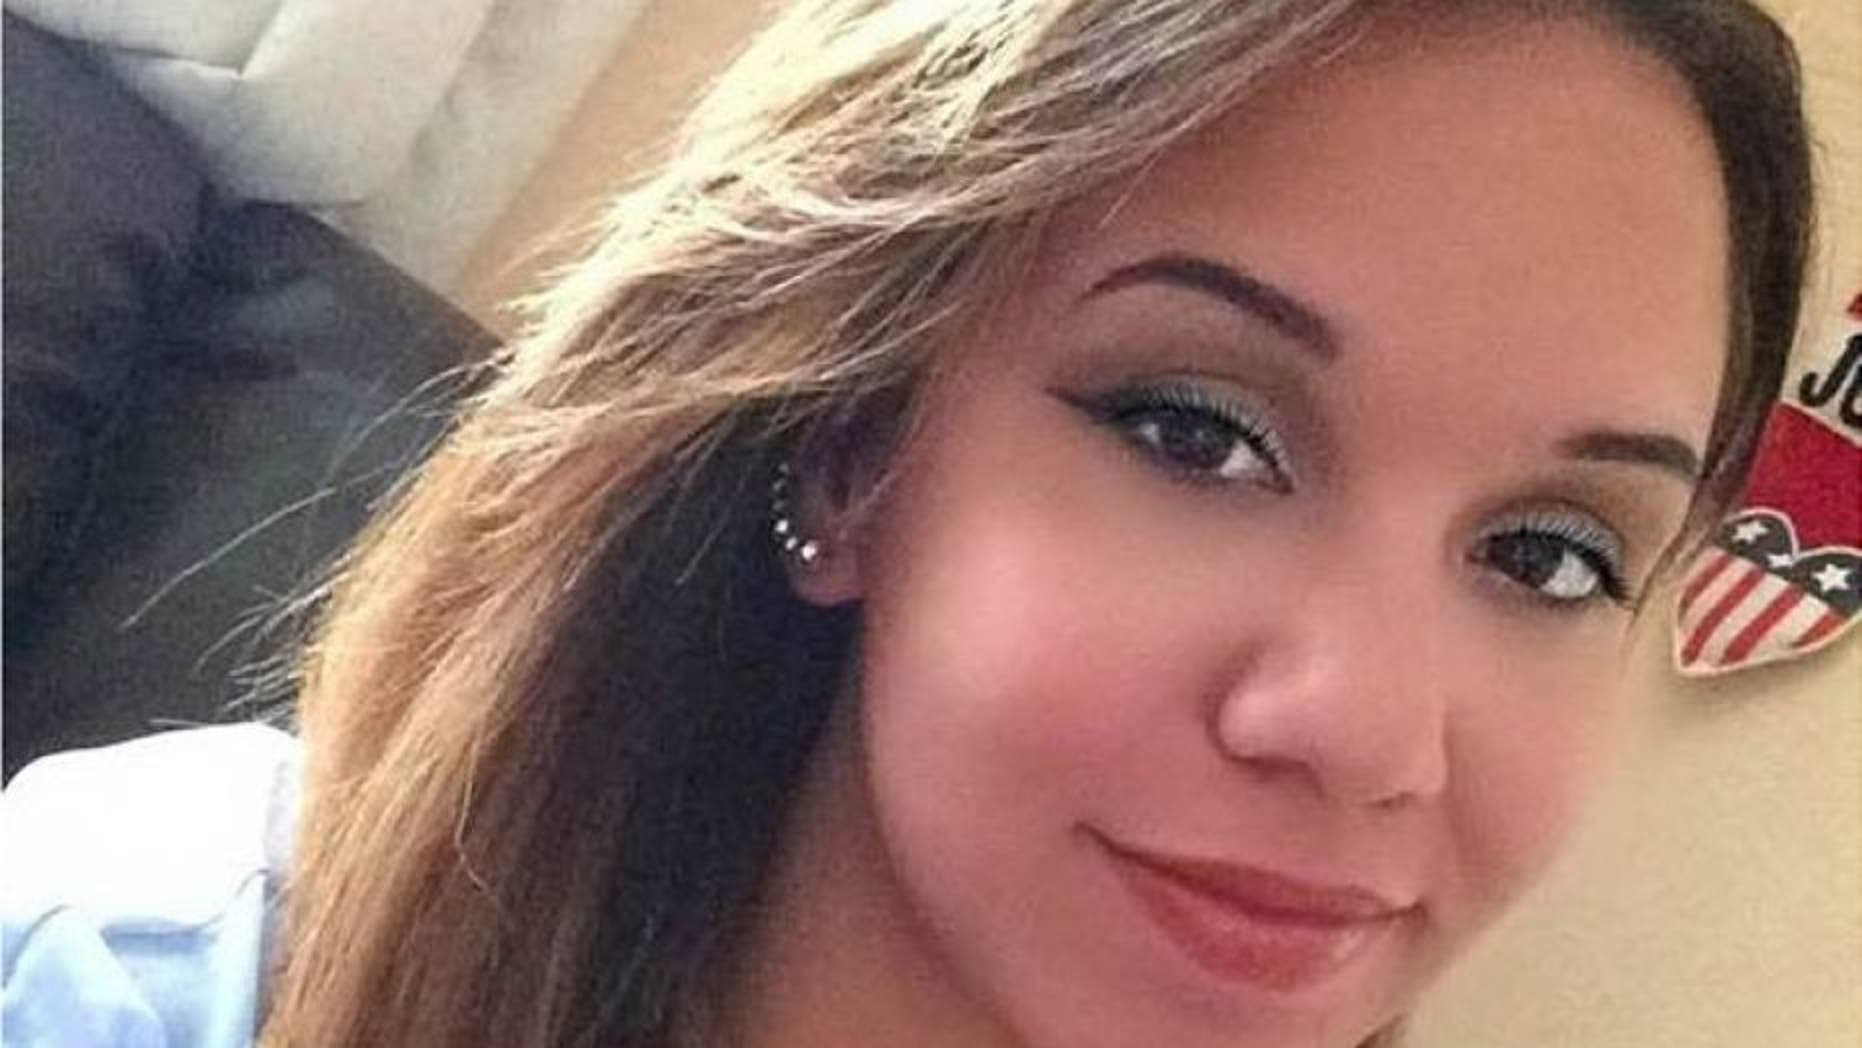 The remains of Lisa Marie Velasquez, 25, were found in two parks in Bronx in the last week.